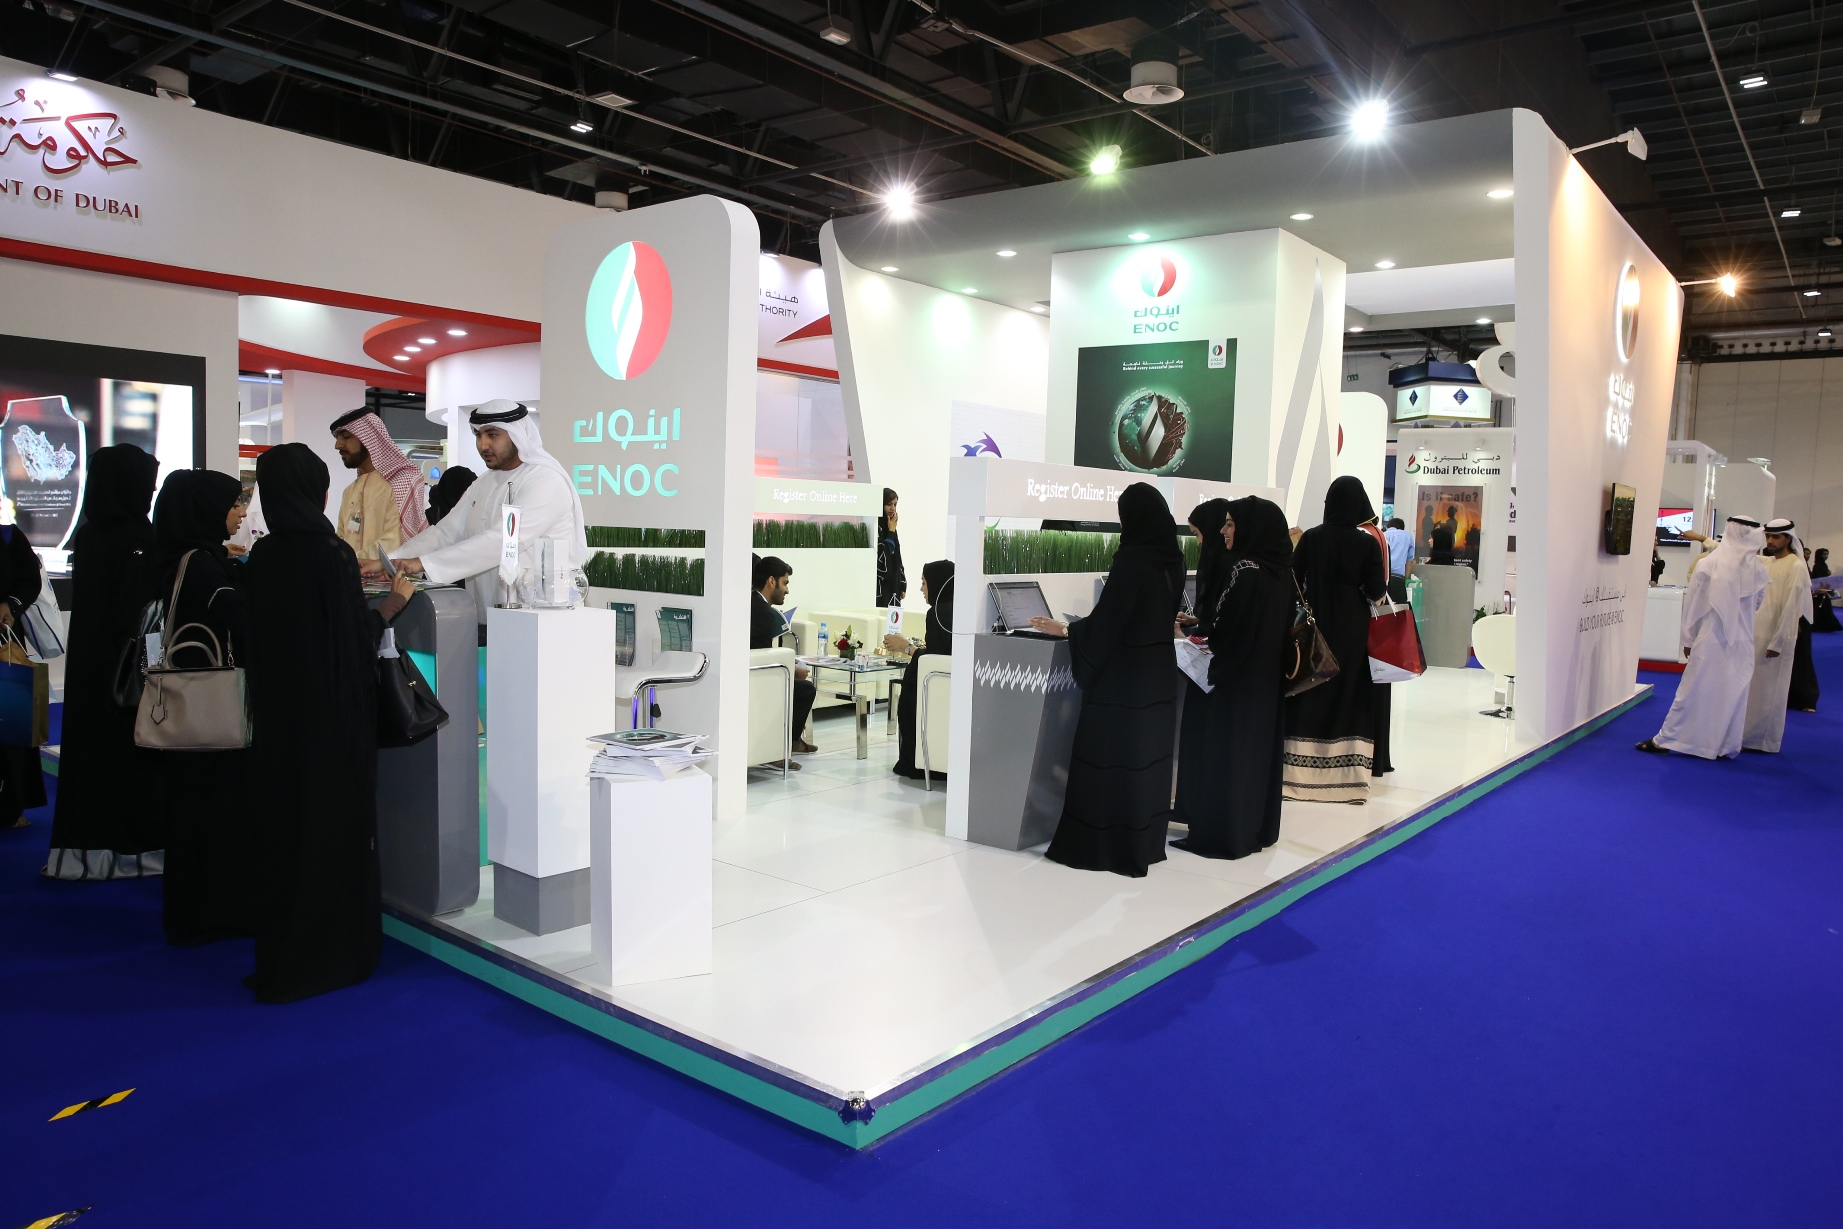 ENOC to hire over 150 Emirati professionals